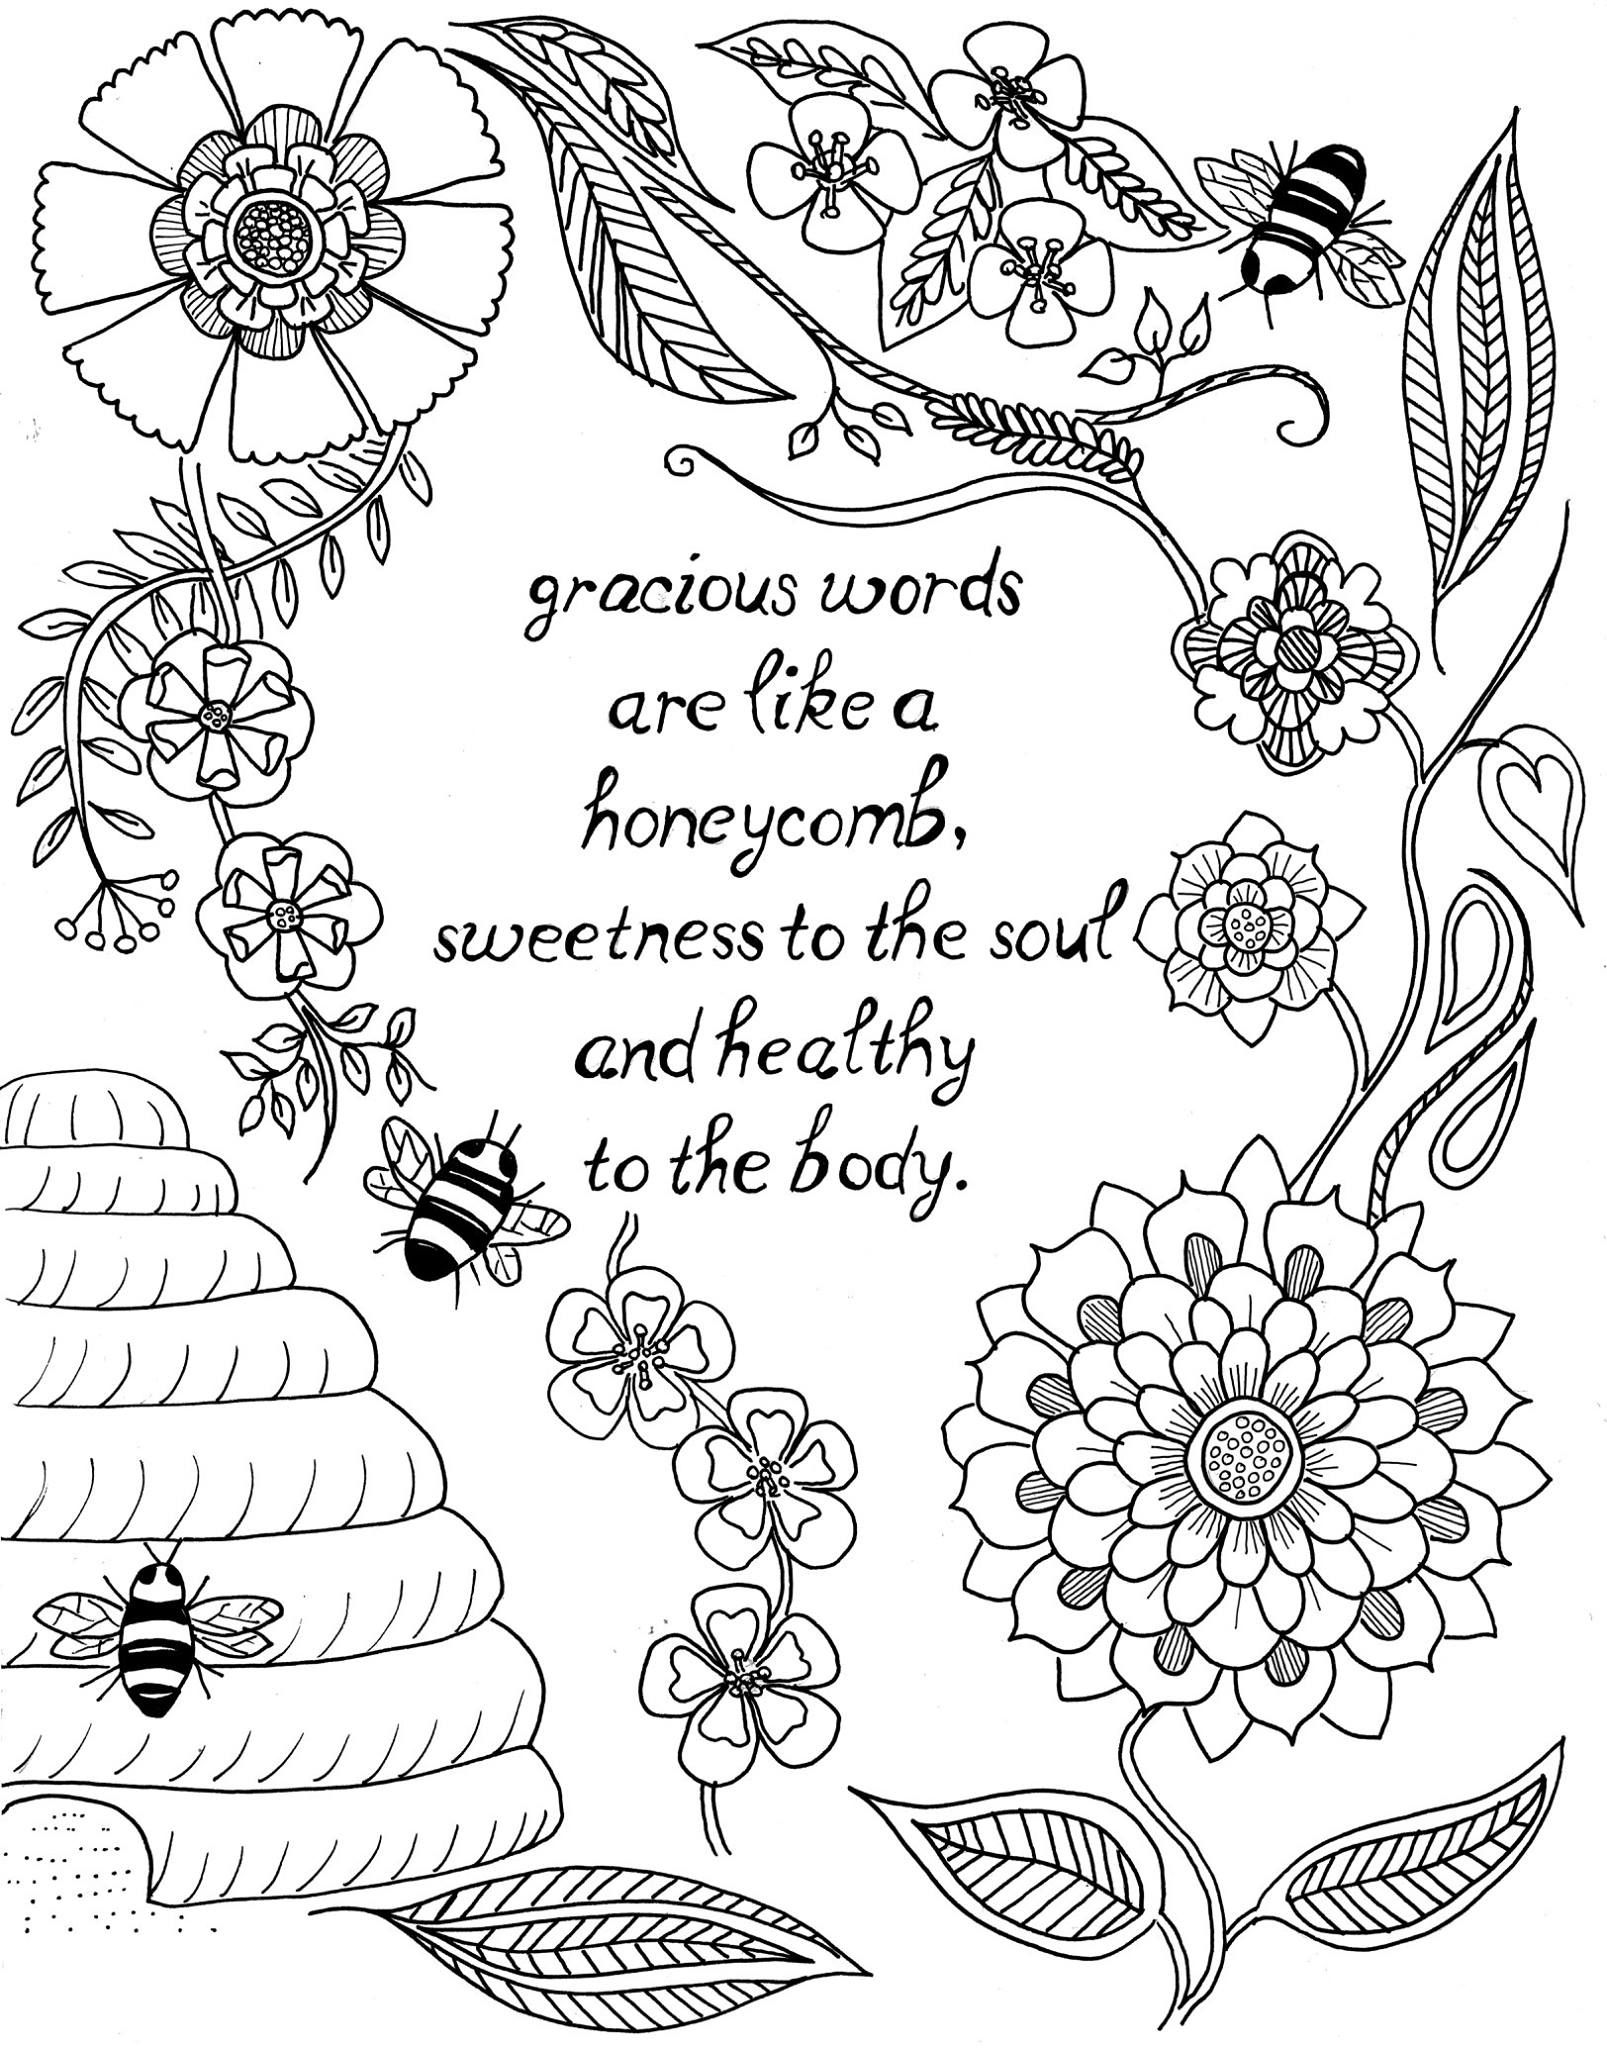 Quote Coloring Pages For Adults And Teens Best Coloring Pages For Kids In 2020 Coloring Pages Inspirational Quote Coloring Pages Bible Verse Coloring Page